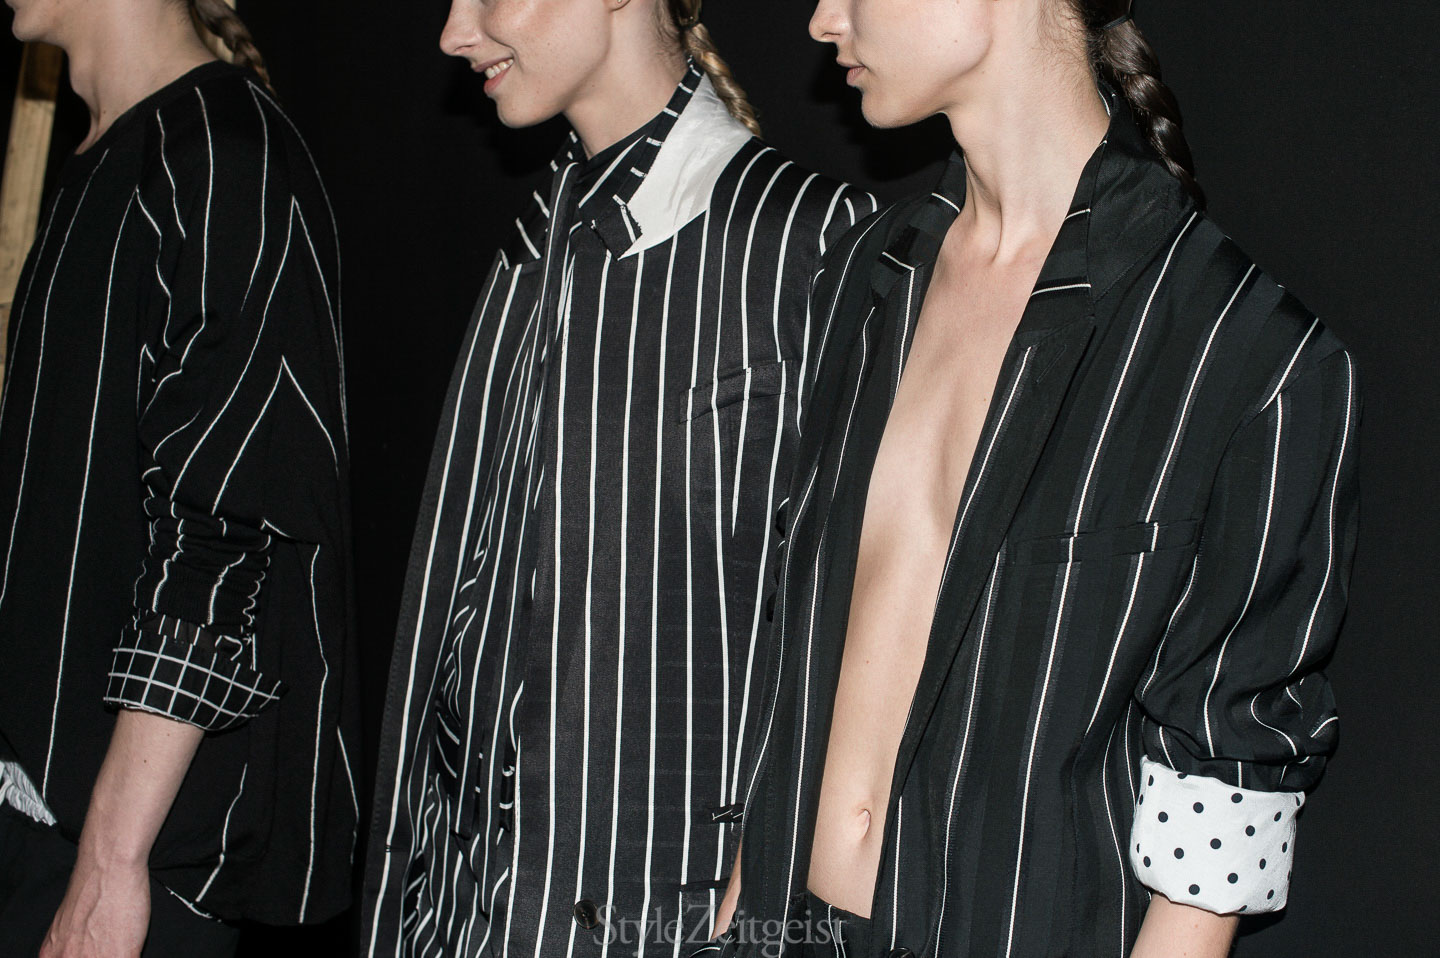 Haider Ackermann S/S18 Men's - Backstage - fashion - StyleZeitgeist SS18 Spring Summer PFW Paris MENSWEAR Haider Ackermann Fashion Backstage 2017